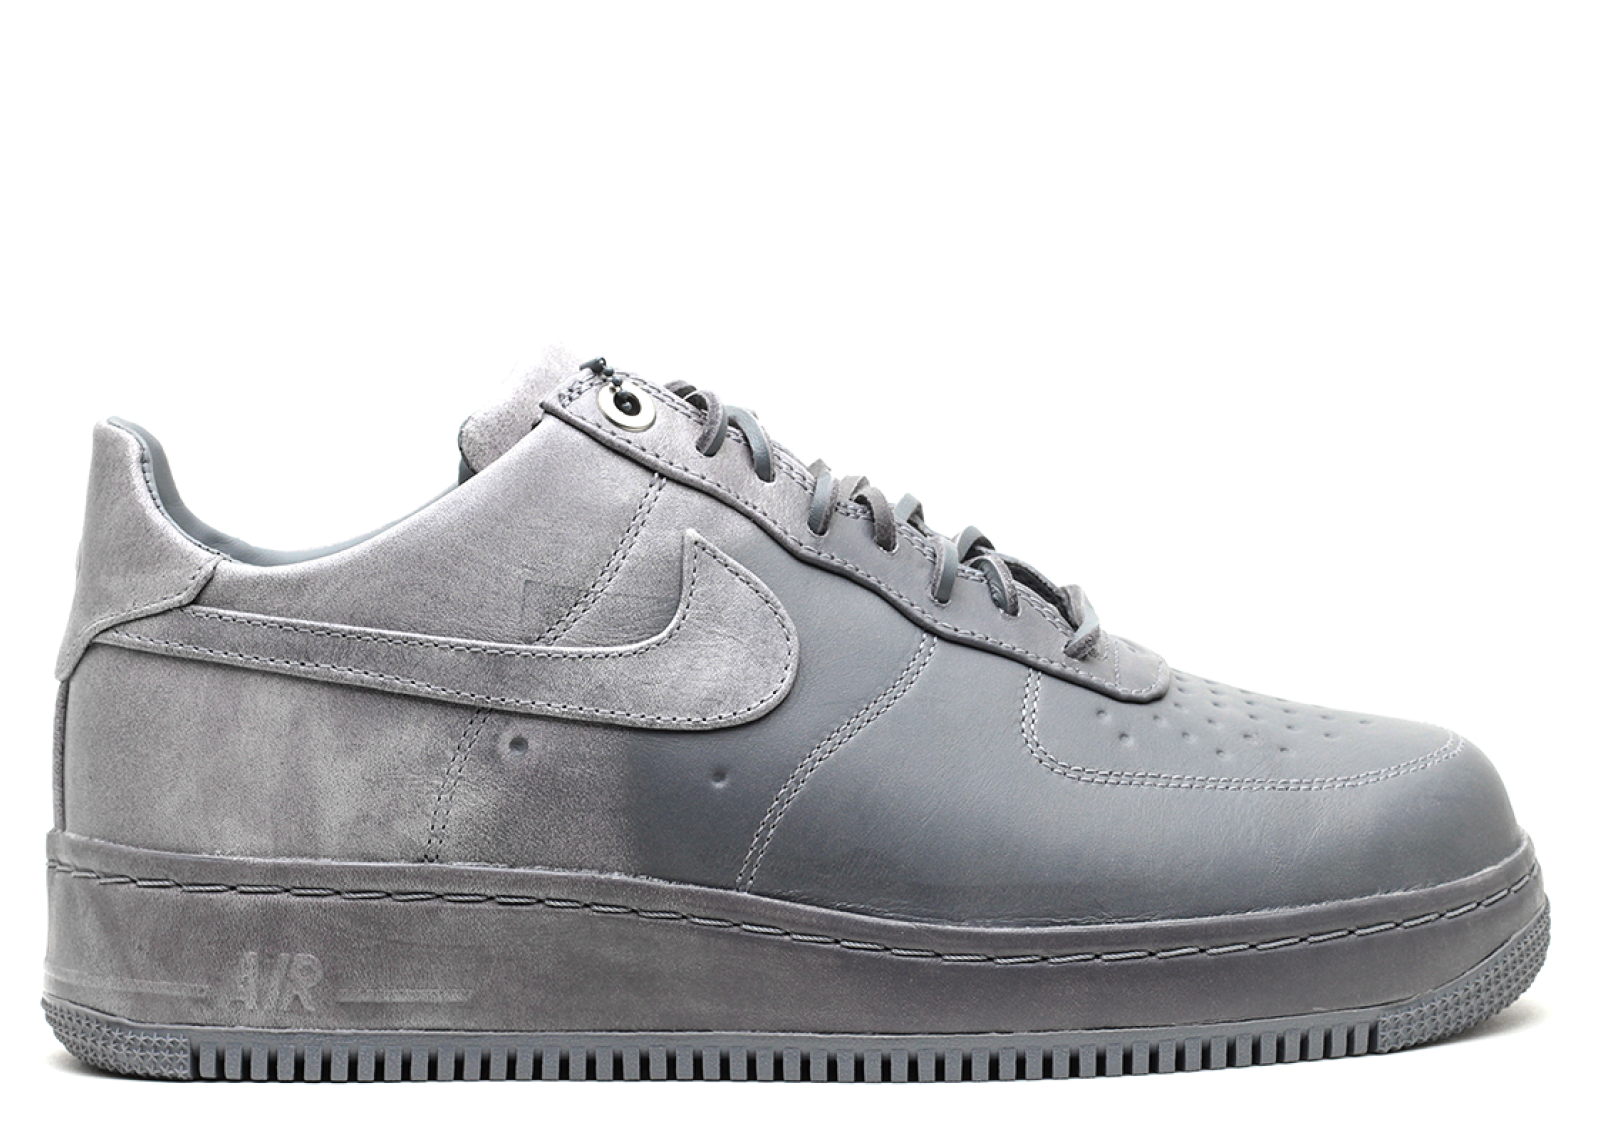 20d1ed3ac8cf nike-air -force-1-lw-cmft-pigalle-sp-pigalle-cool-grey-cool-grey-021400 1.png v 1503520943